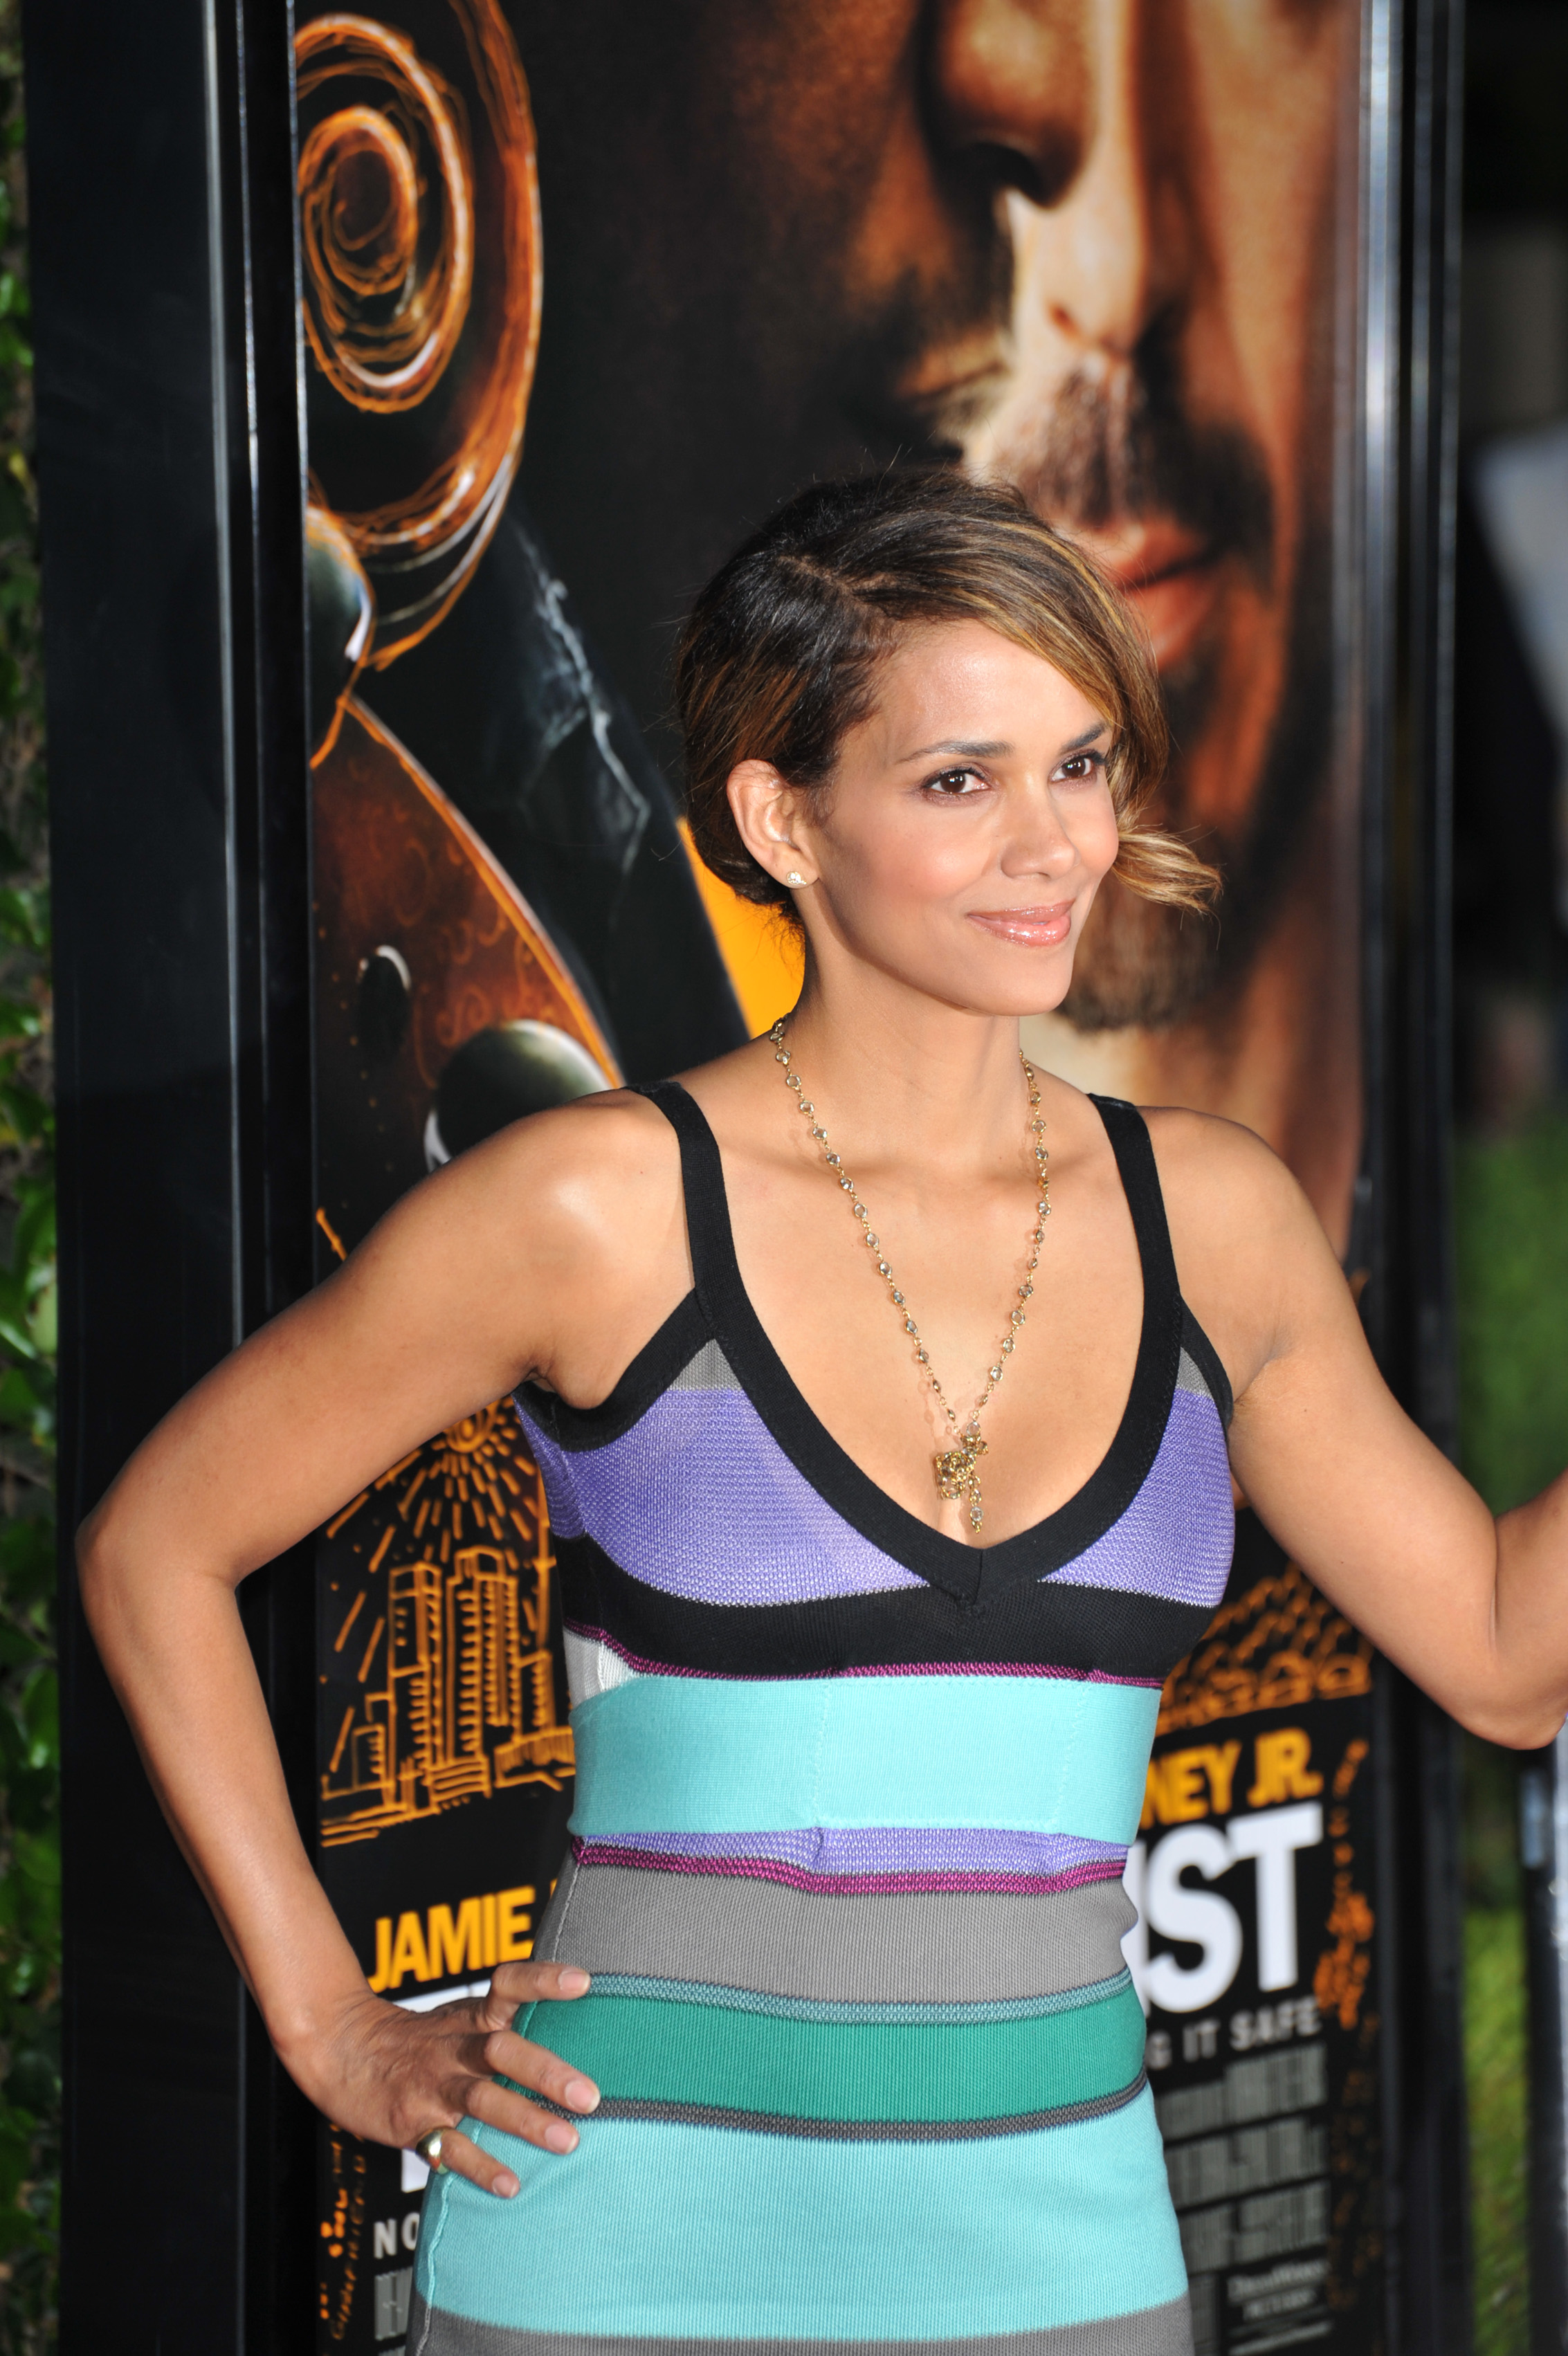 64631_Halle_Berry_The_Soloist_premiere_in_Los_Angeles_12_122_483lo.jpg